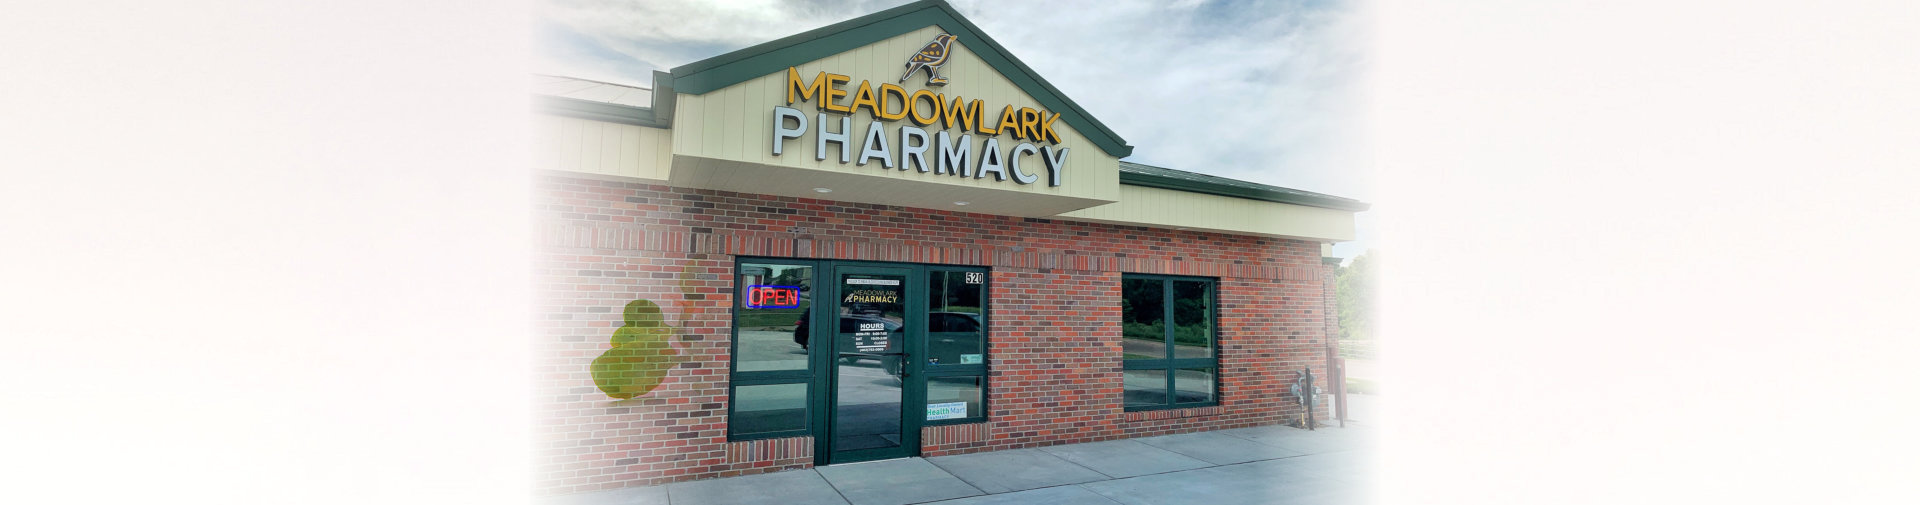 Meadownlark Pharmacy Store